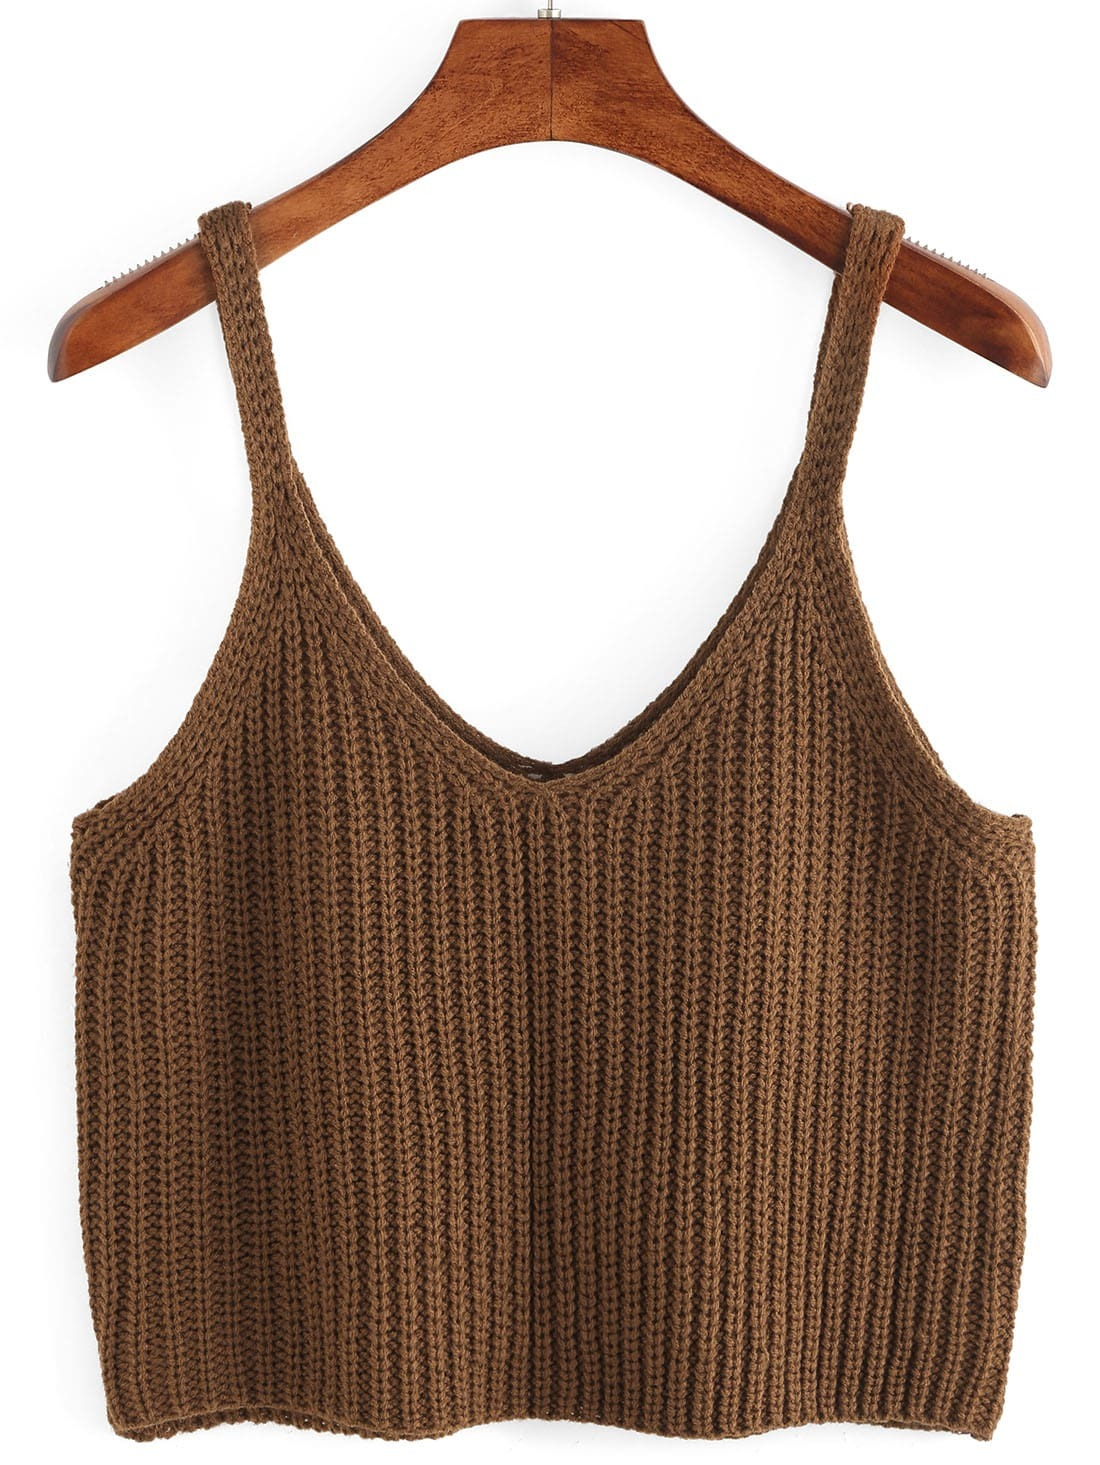 Knitted Crop Tank Top RVES160418108